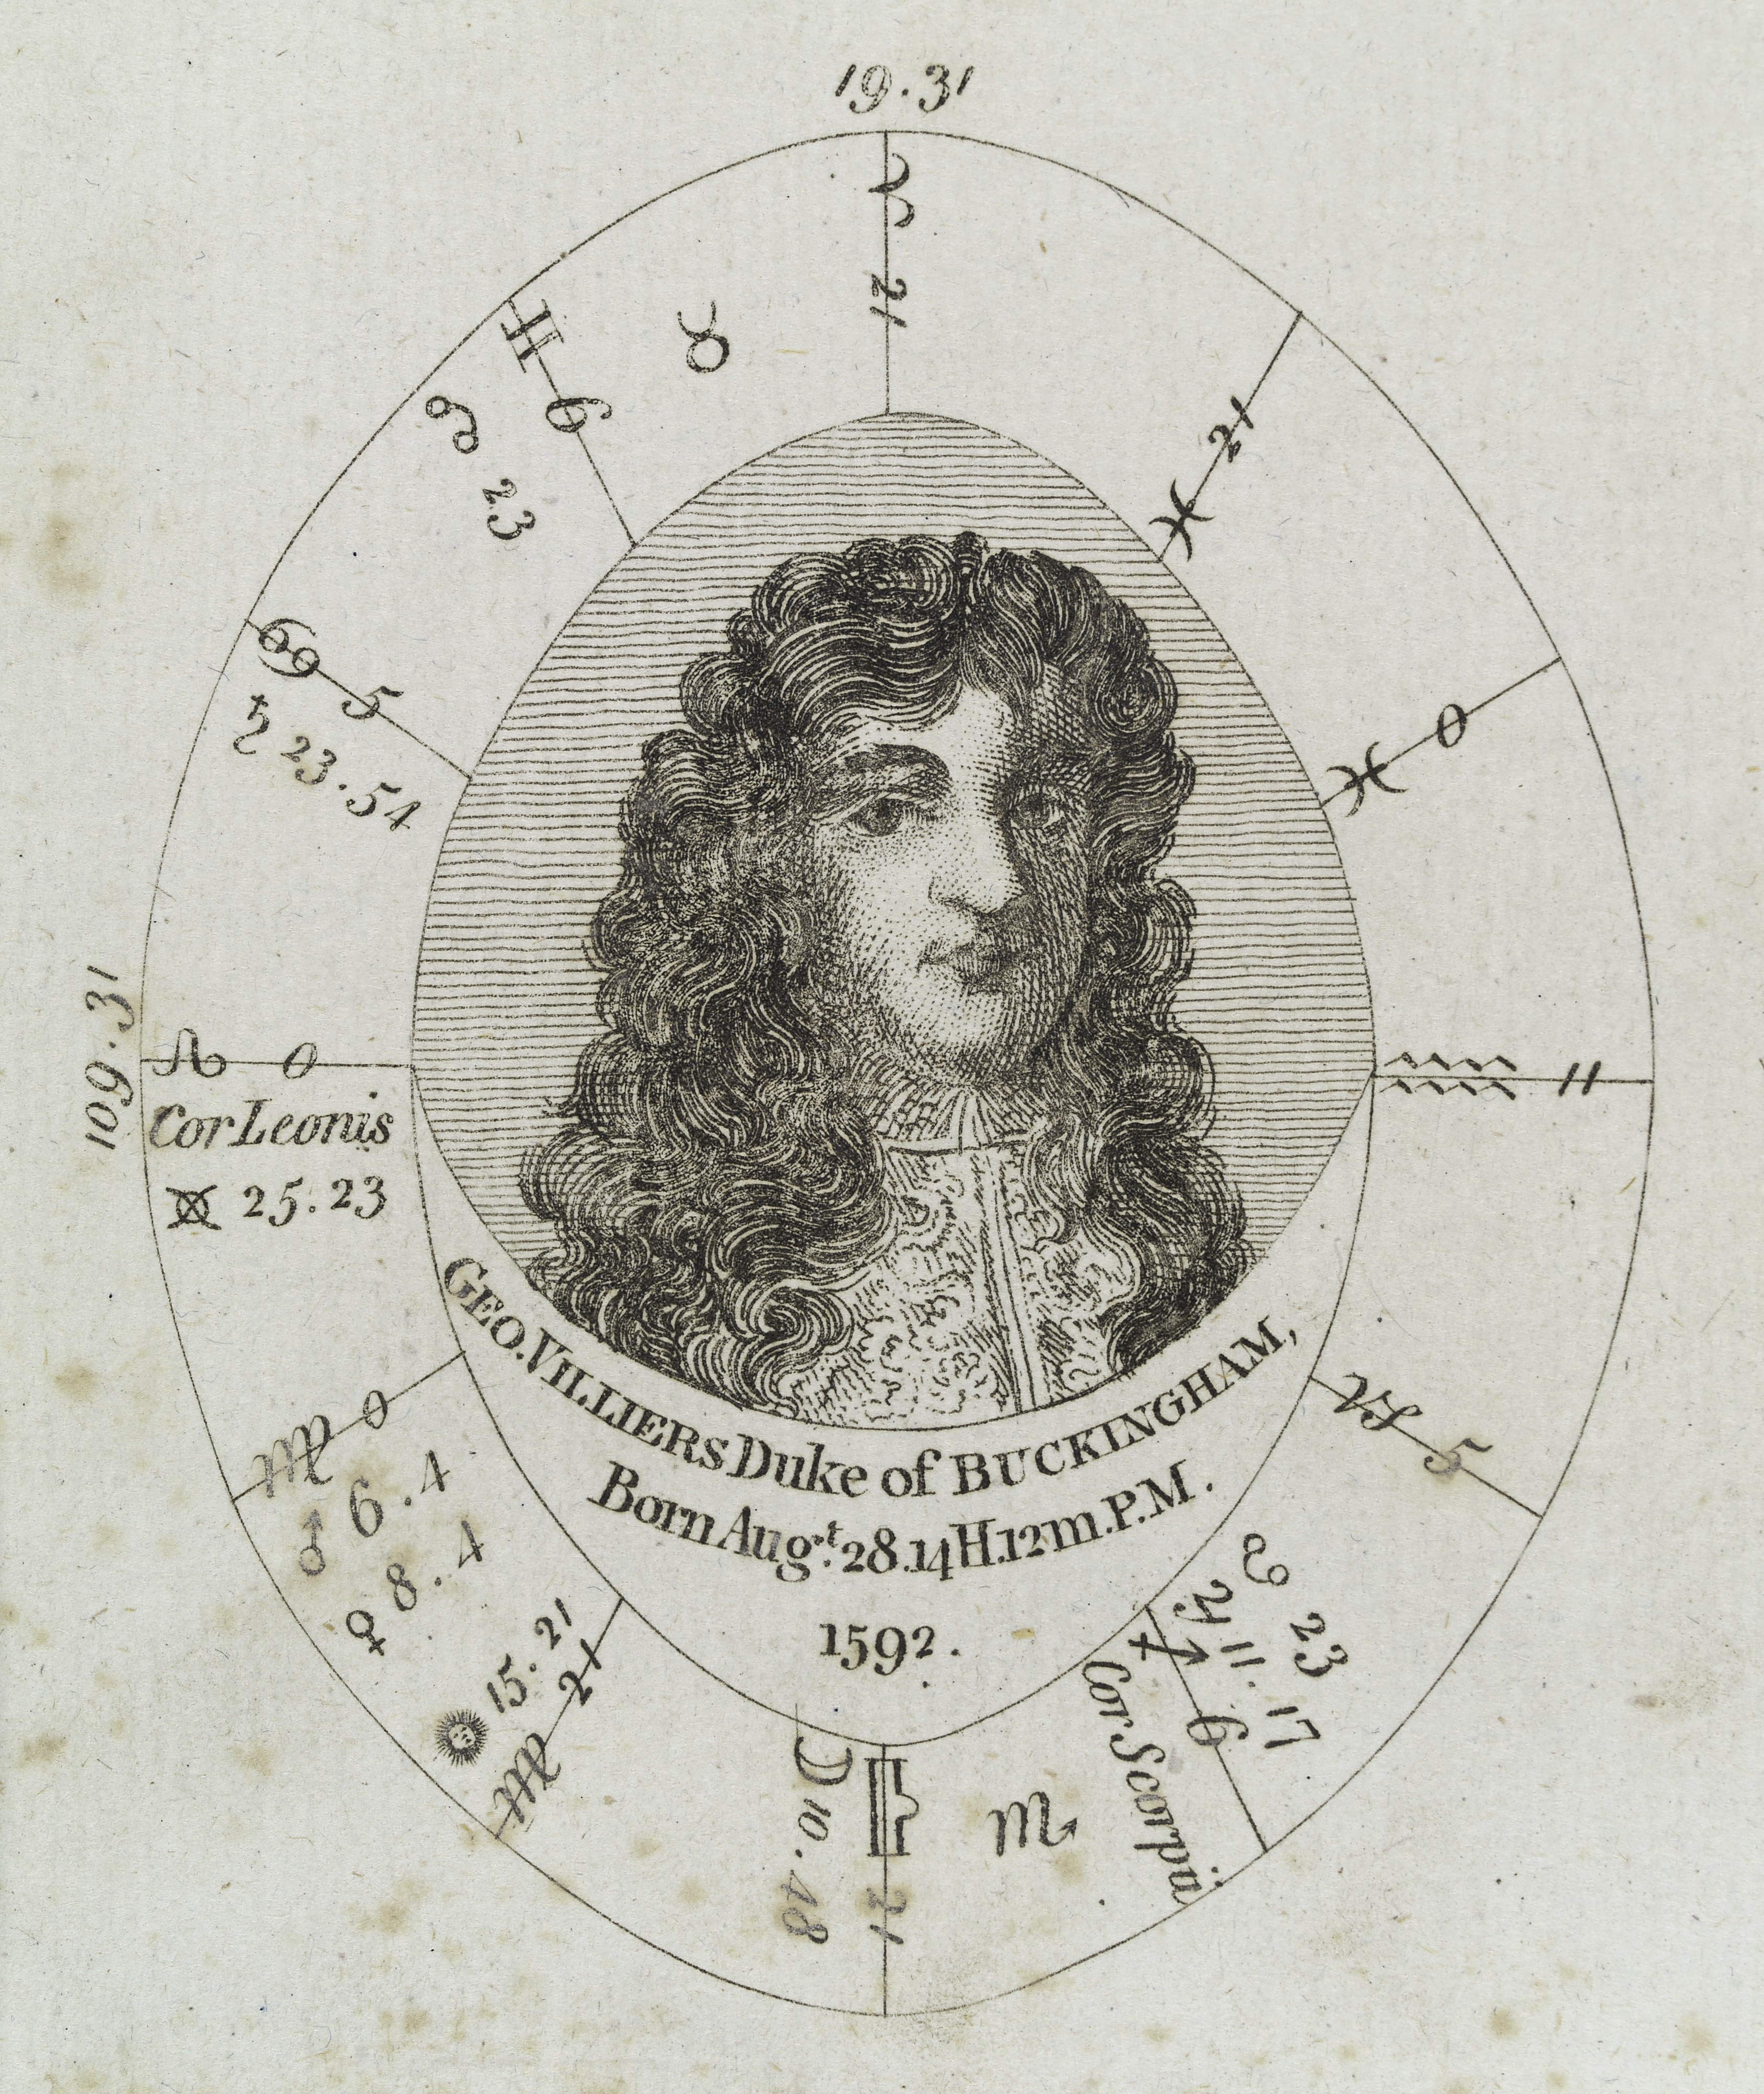 Chart Birthday Astrology: Astrological birth chart for 1st Duke of Buckingham Wellcome ,Chart